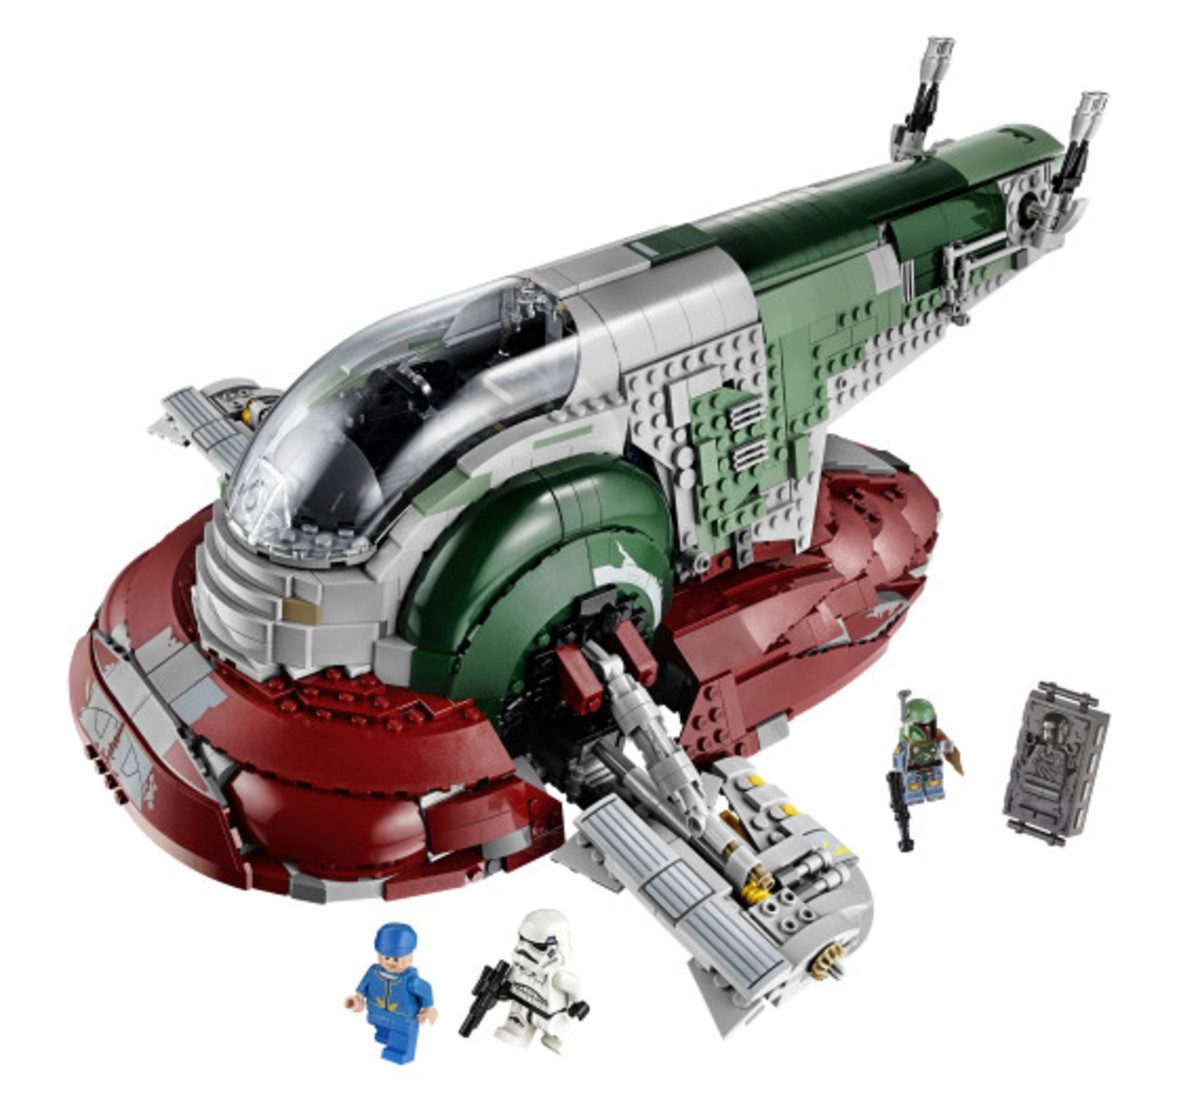 Star Wars x LEGO Ultimate Collector's Series: Boba Fett's Slave I Kit | Release Info - 32